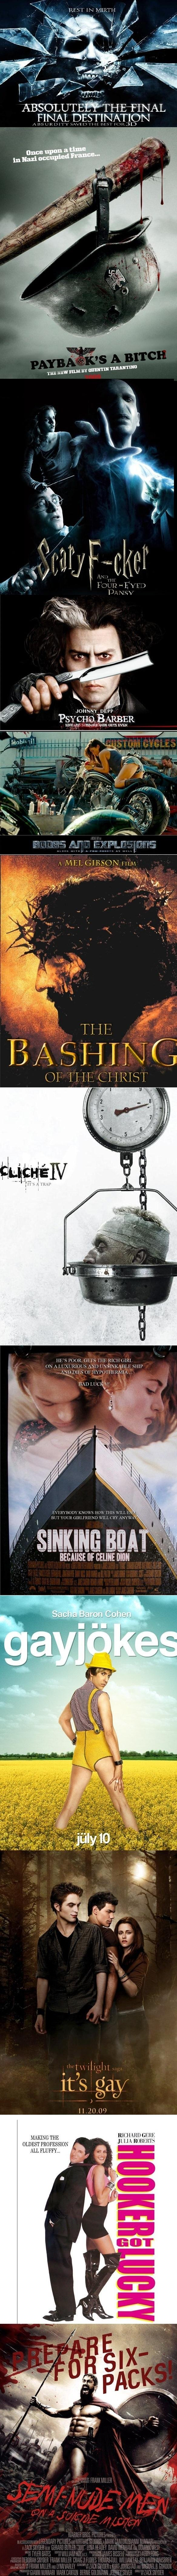 epicmovieposter - if movie posters told the truth